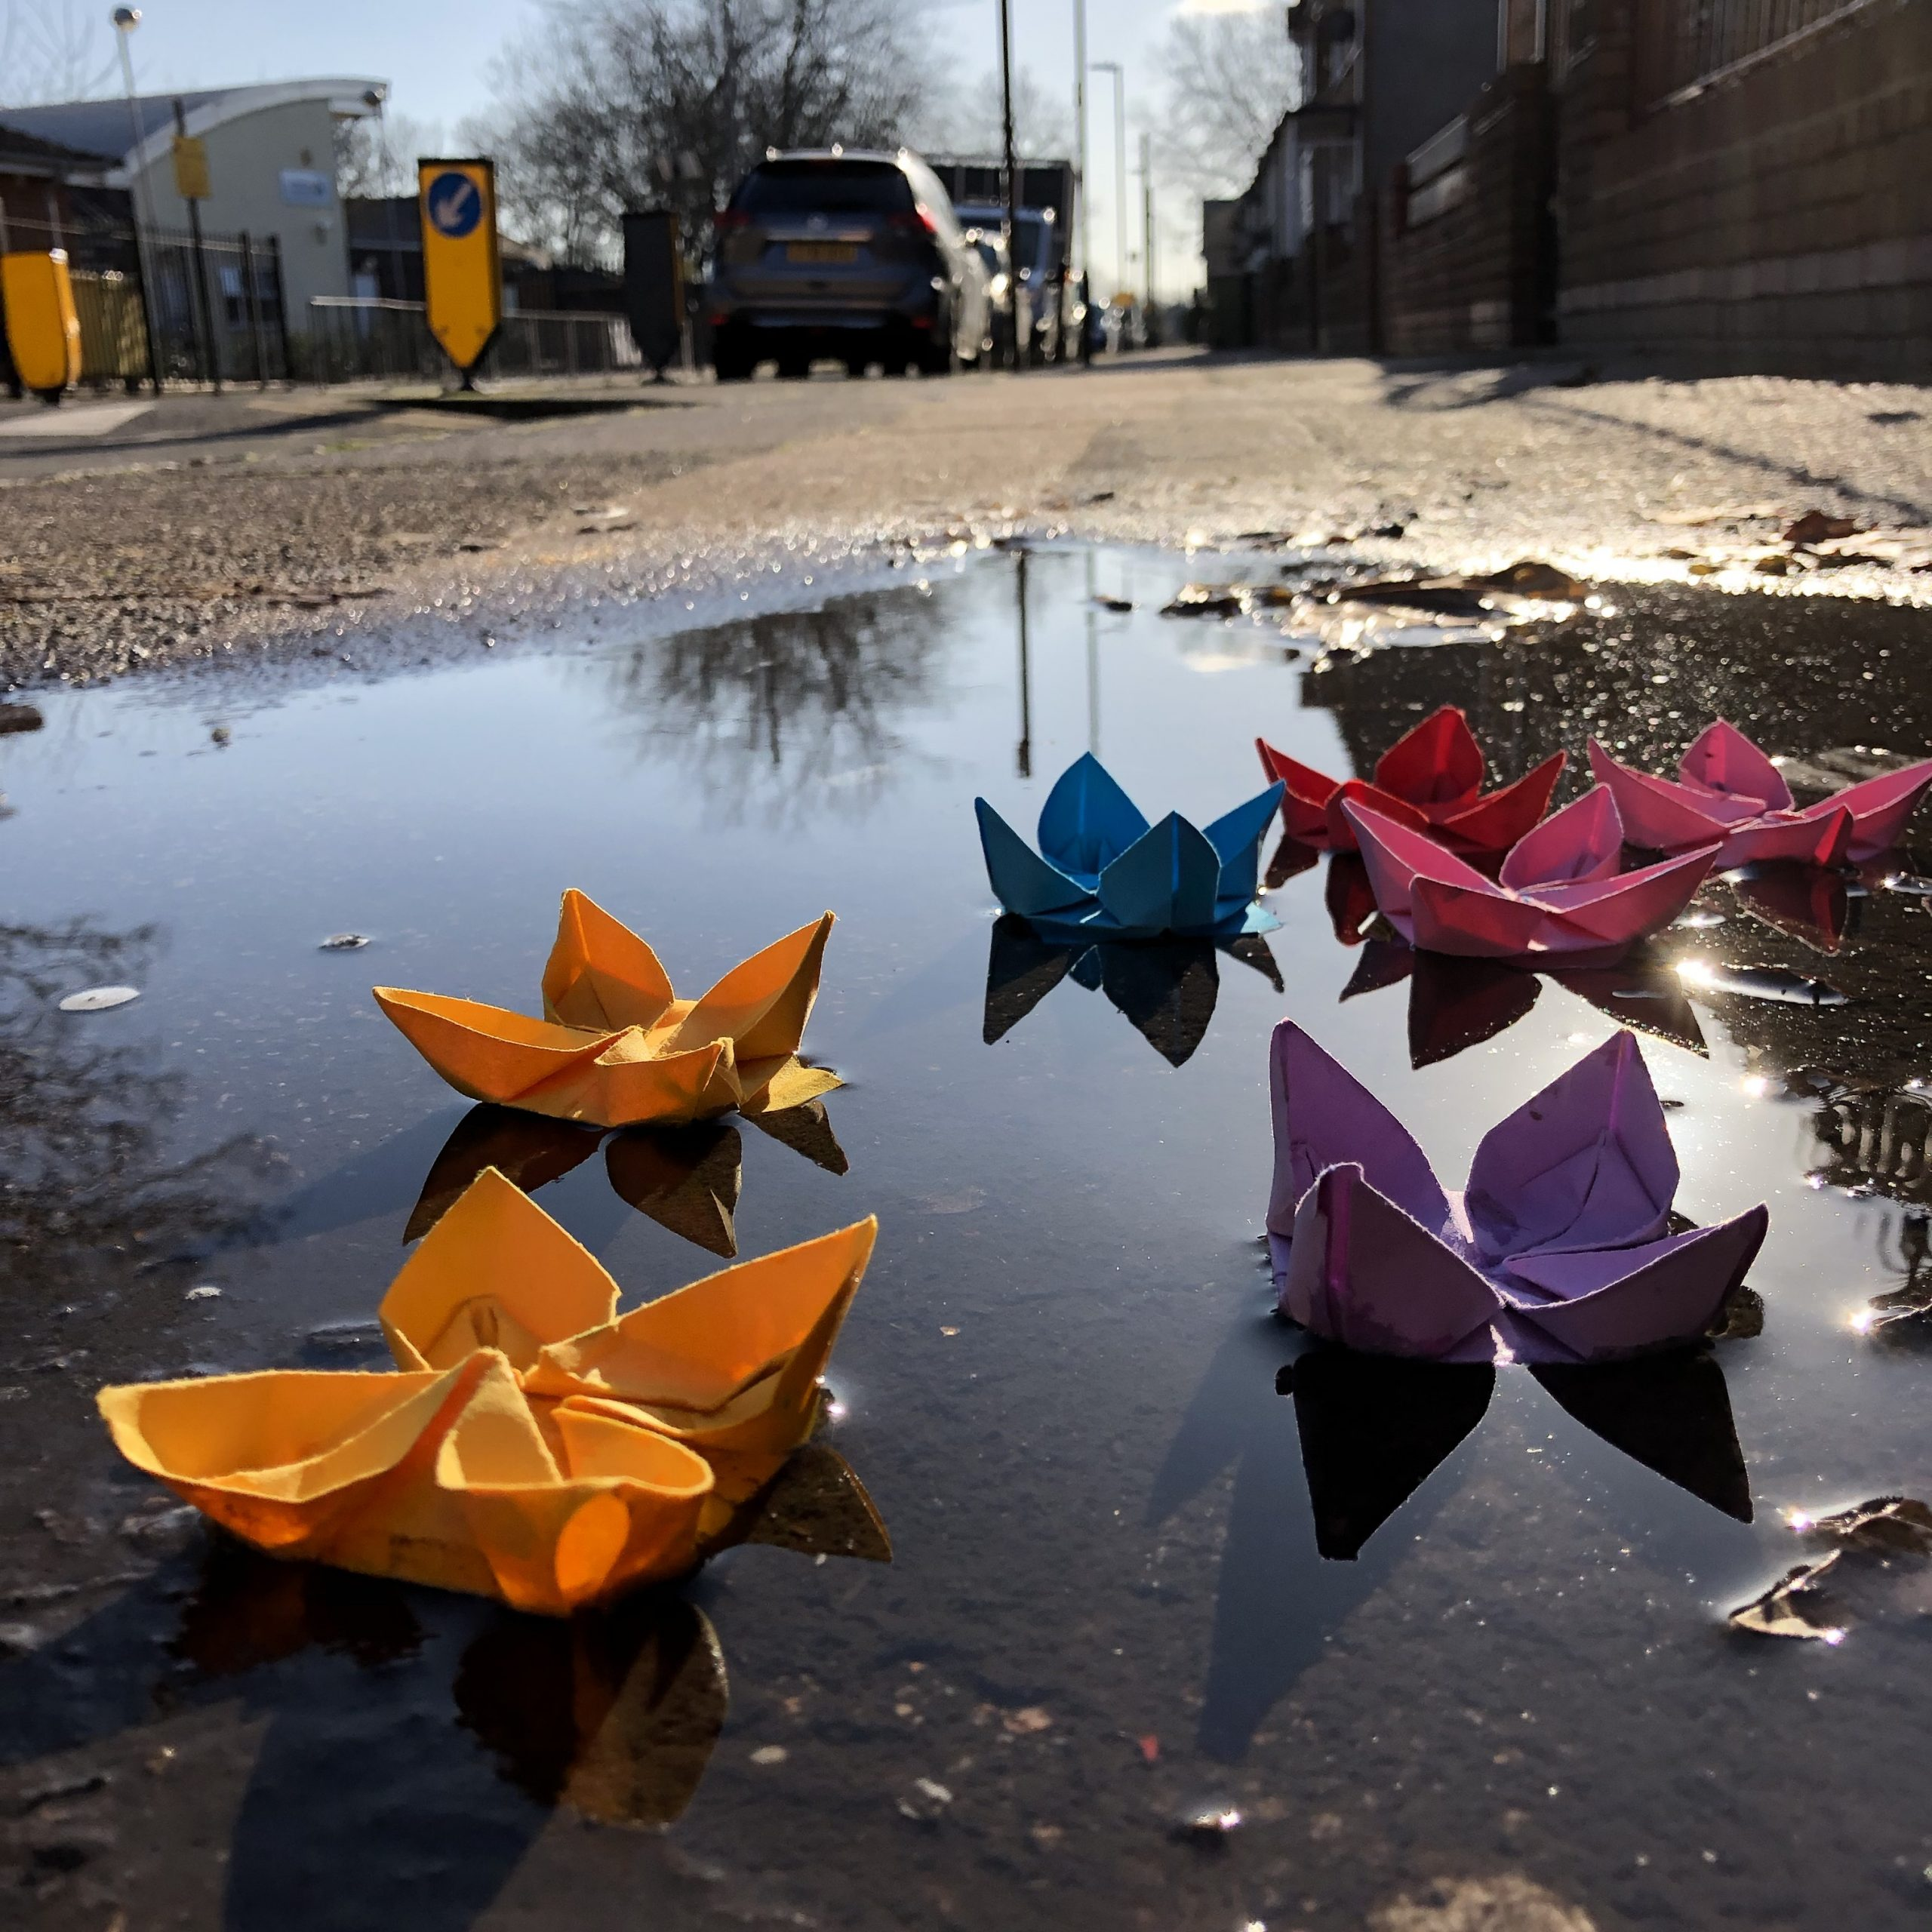 The Streets of London Are Paved in Puddles & Flowers